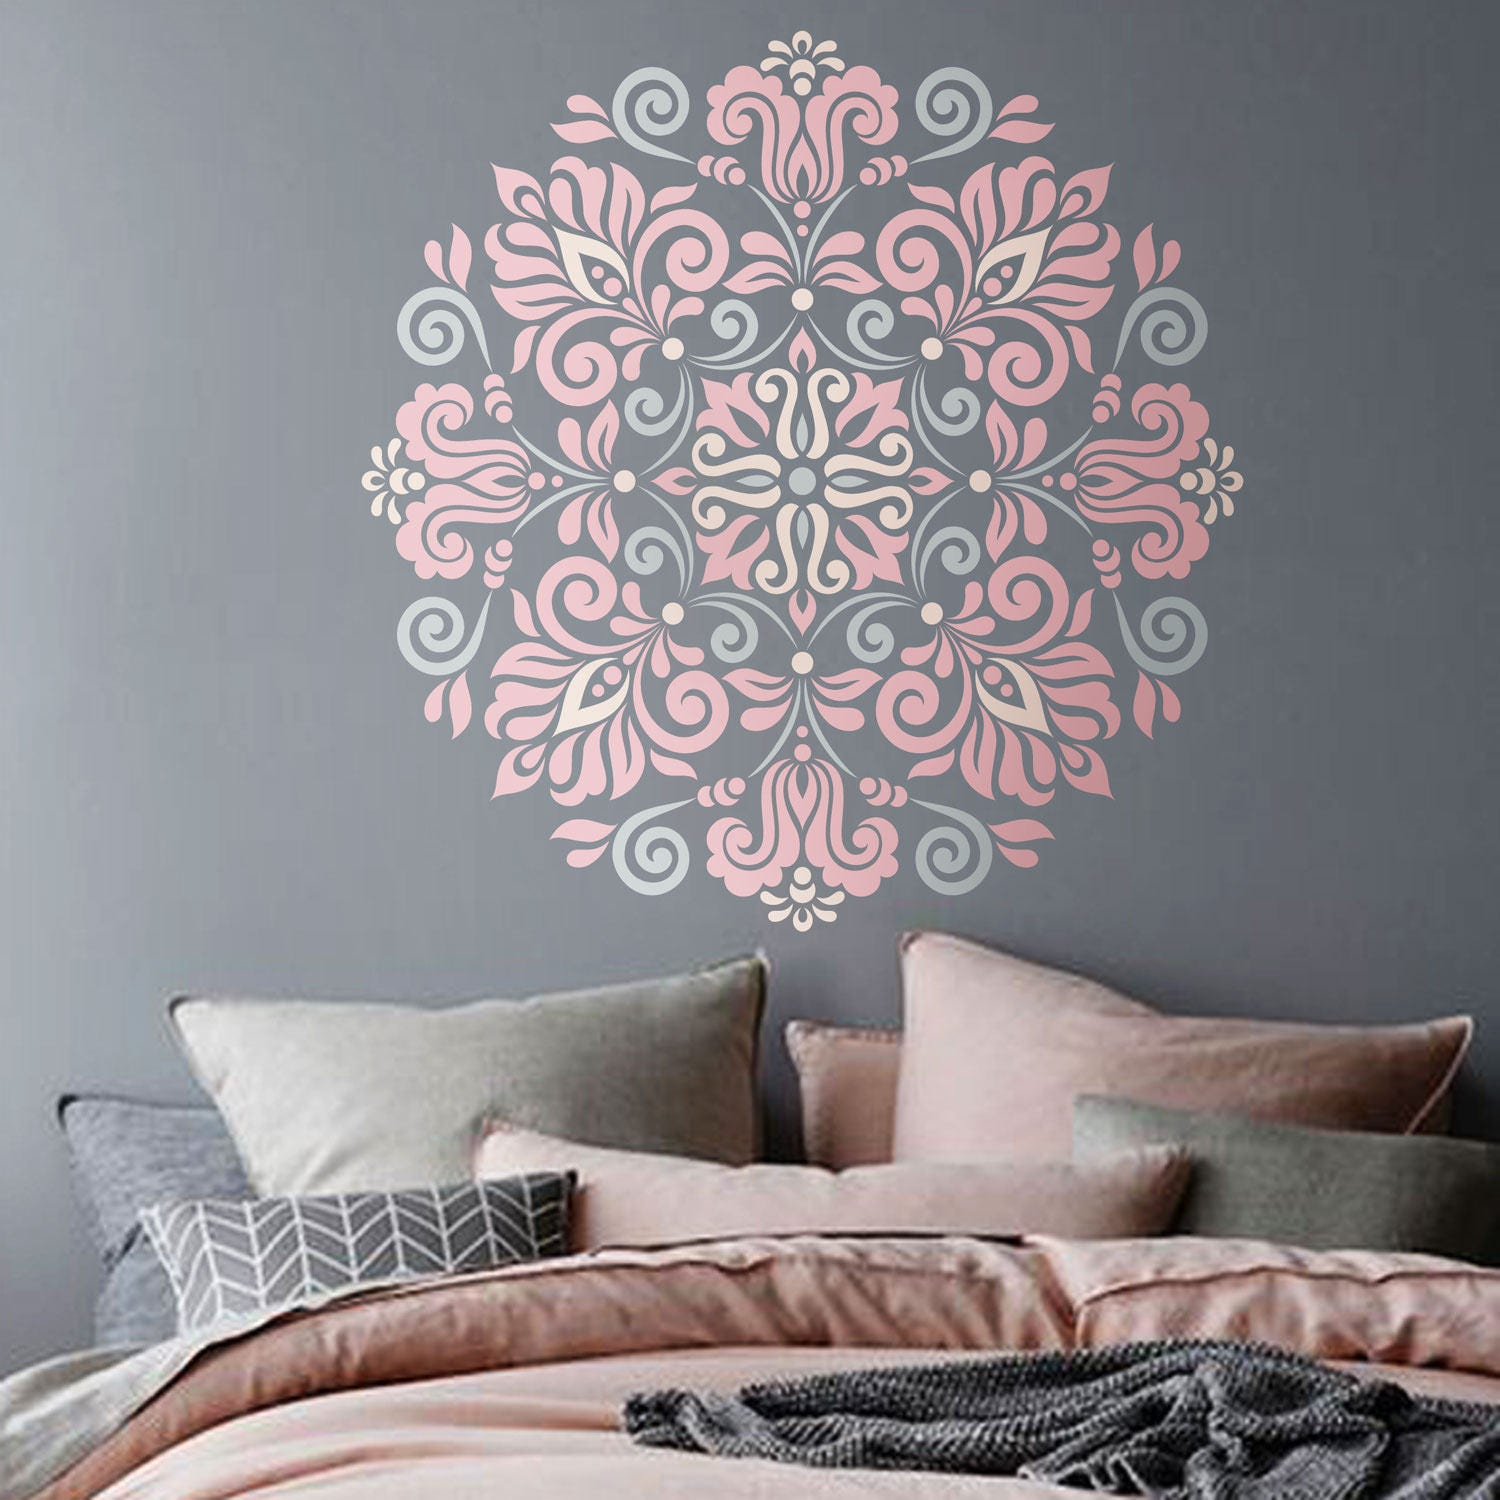 Mandala stencil tribal pattern for diy wall decor modern home zoom amipublicfo Image collections